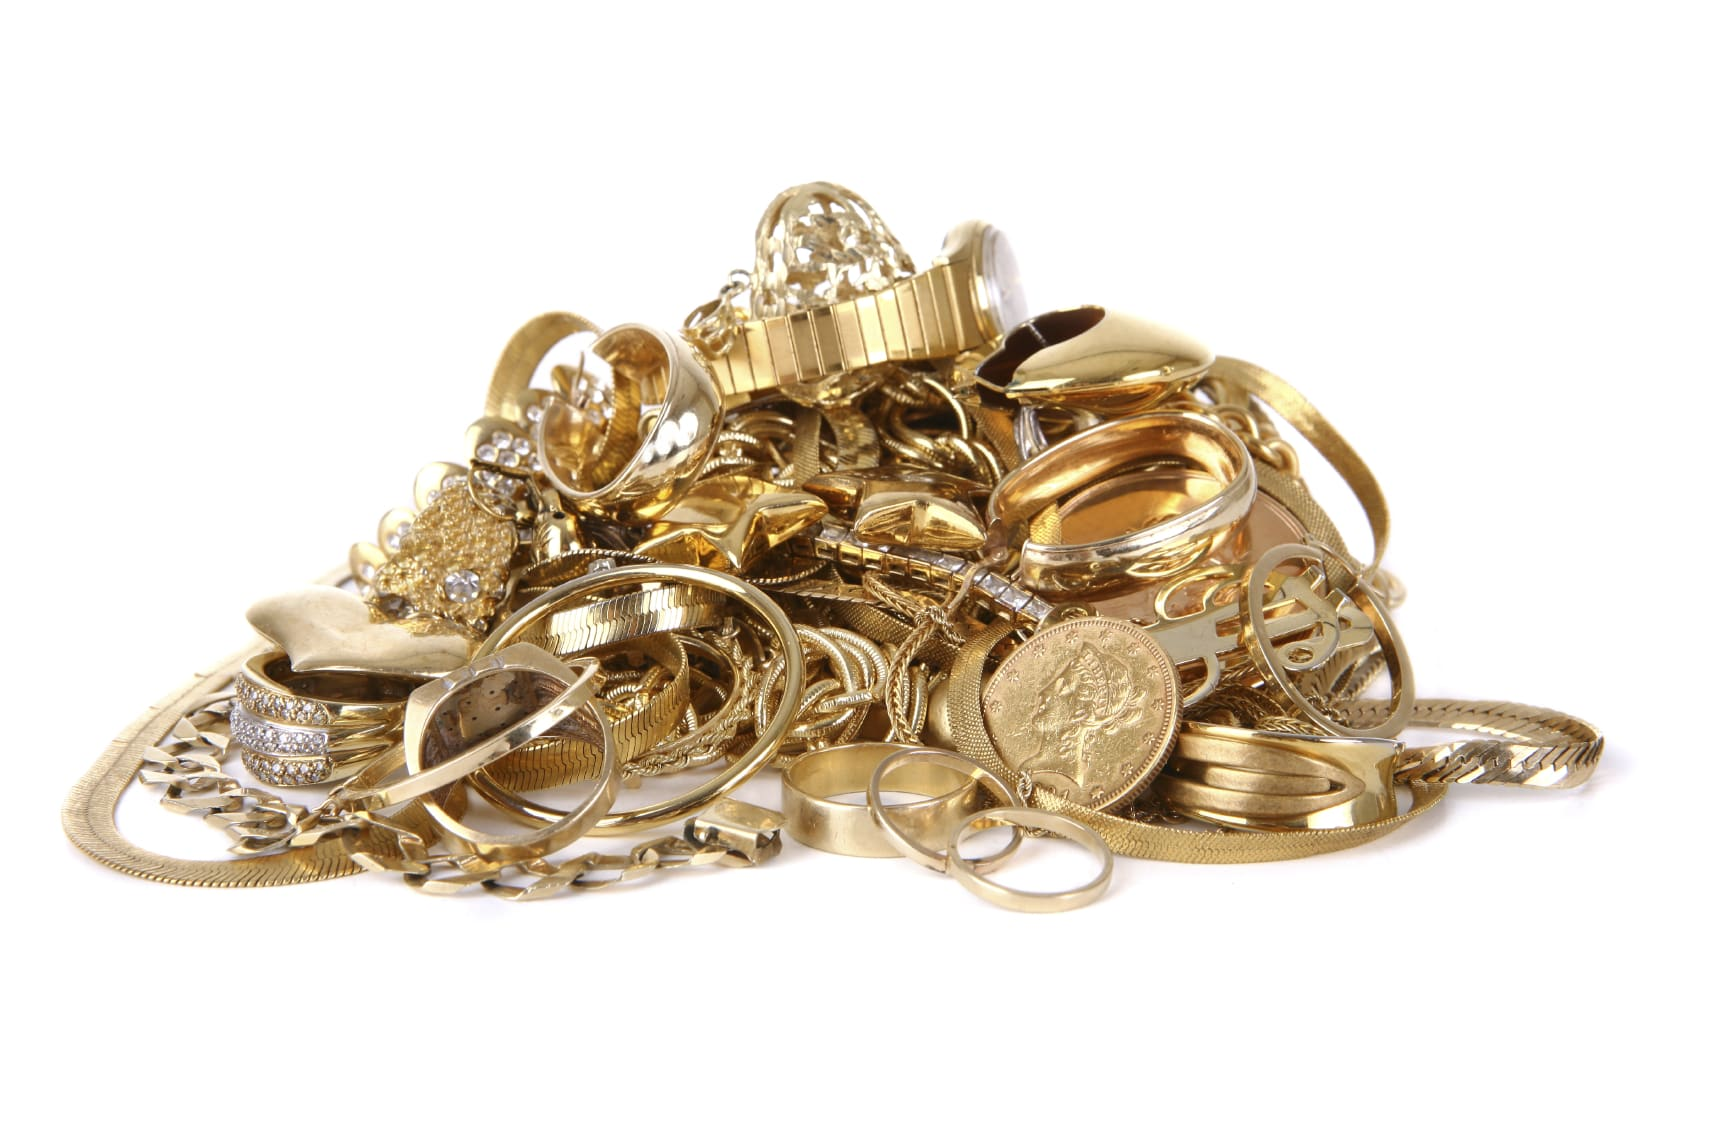 Gold, Estate & Inheritance Jewelry